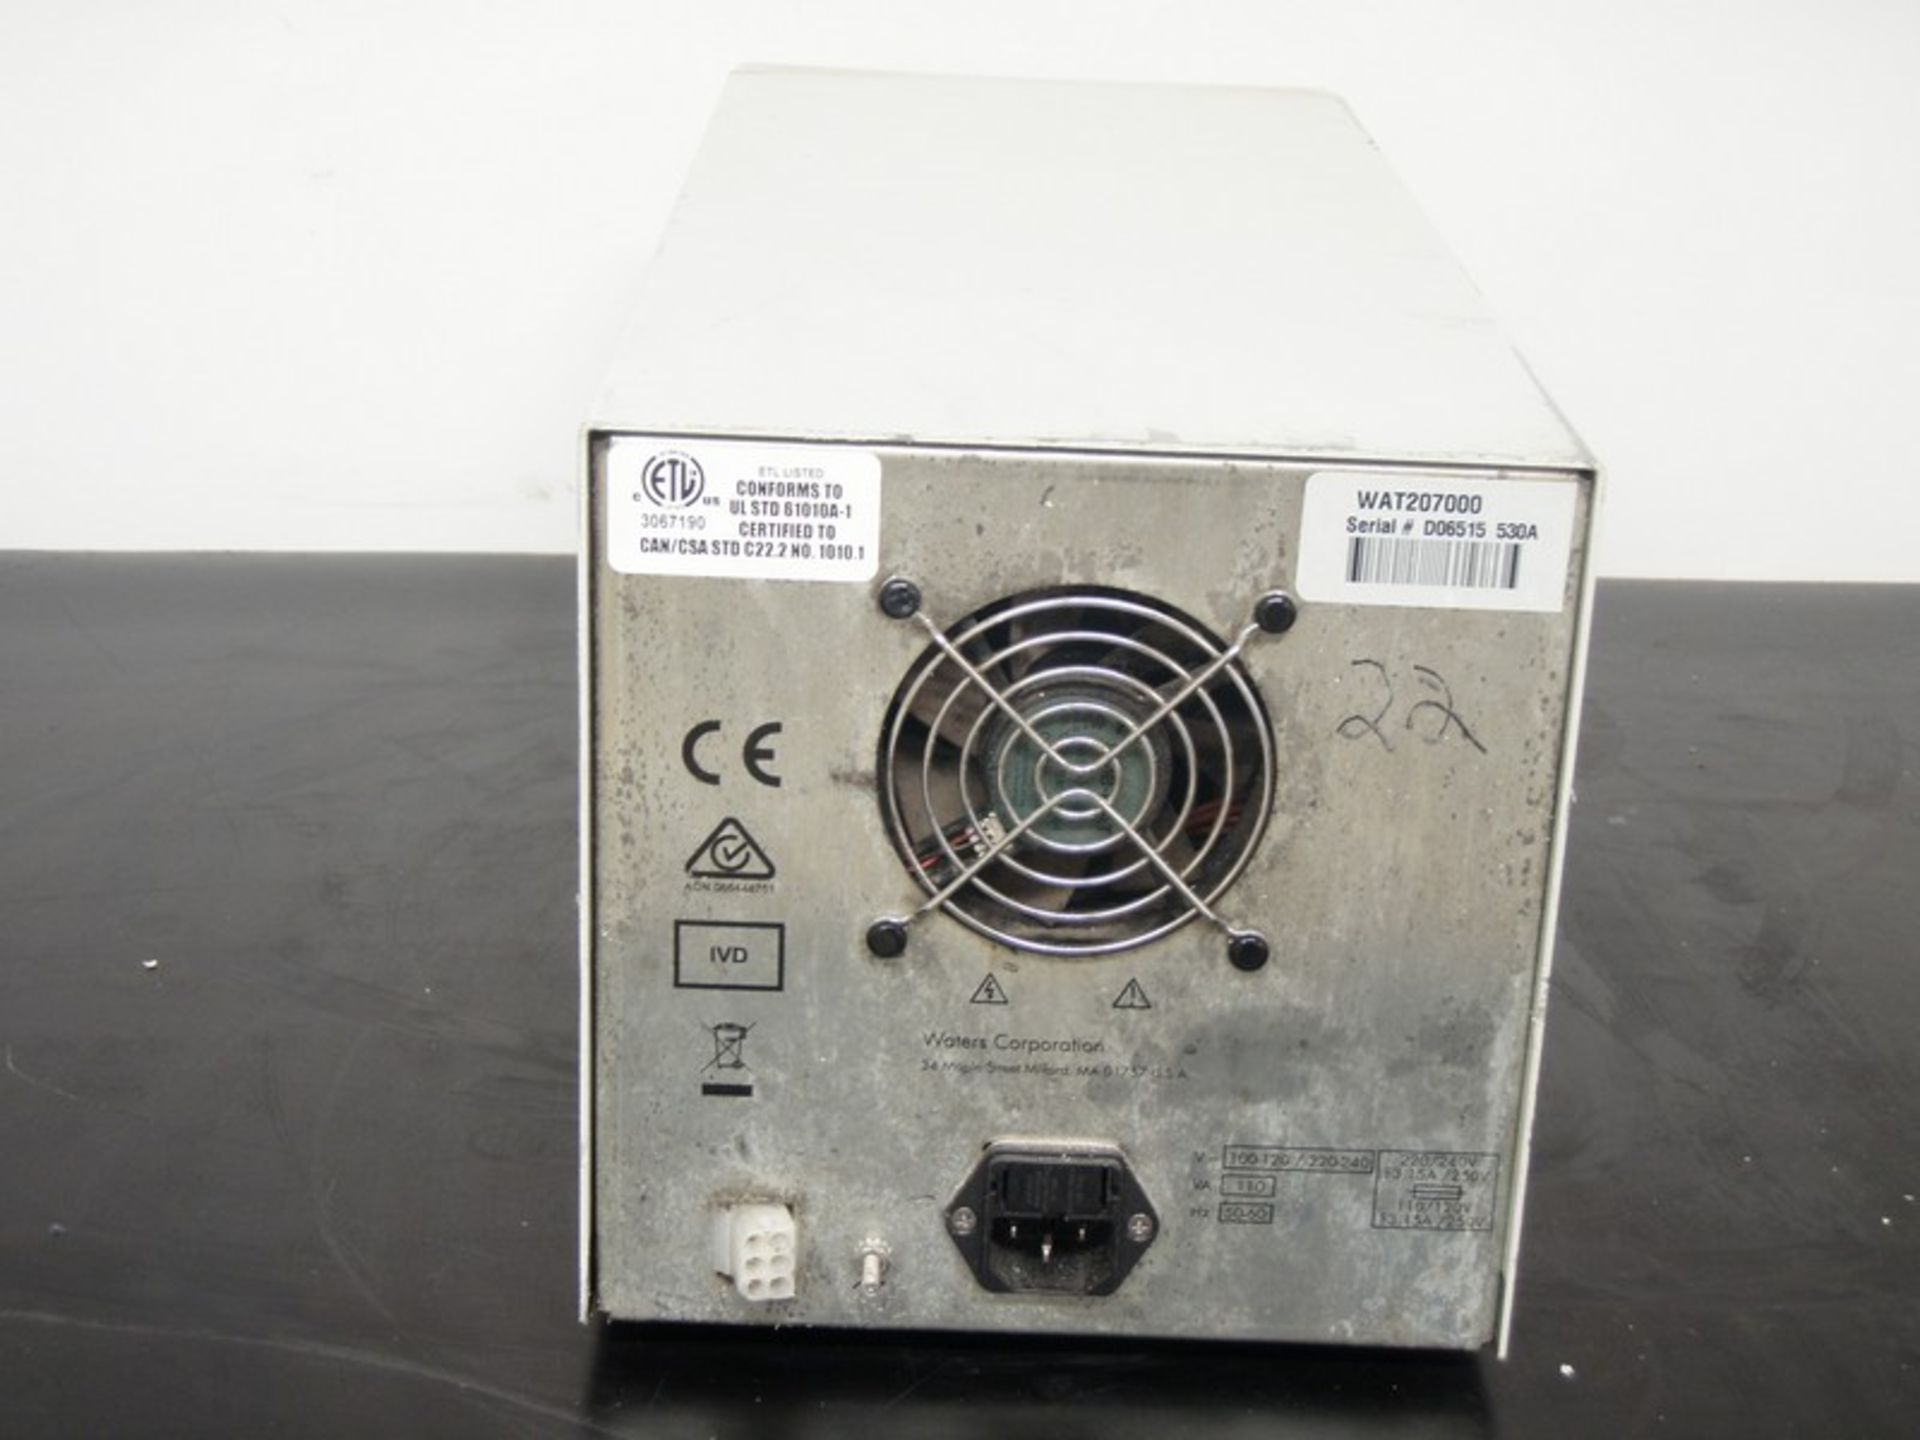 Lot 240 - Waters 515 HPLC Pump, Model WAT20700, S/N D06515 530A (NOTE: Pump Powers On)***Located in NC***